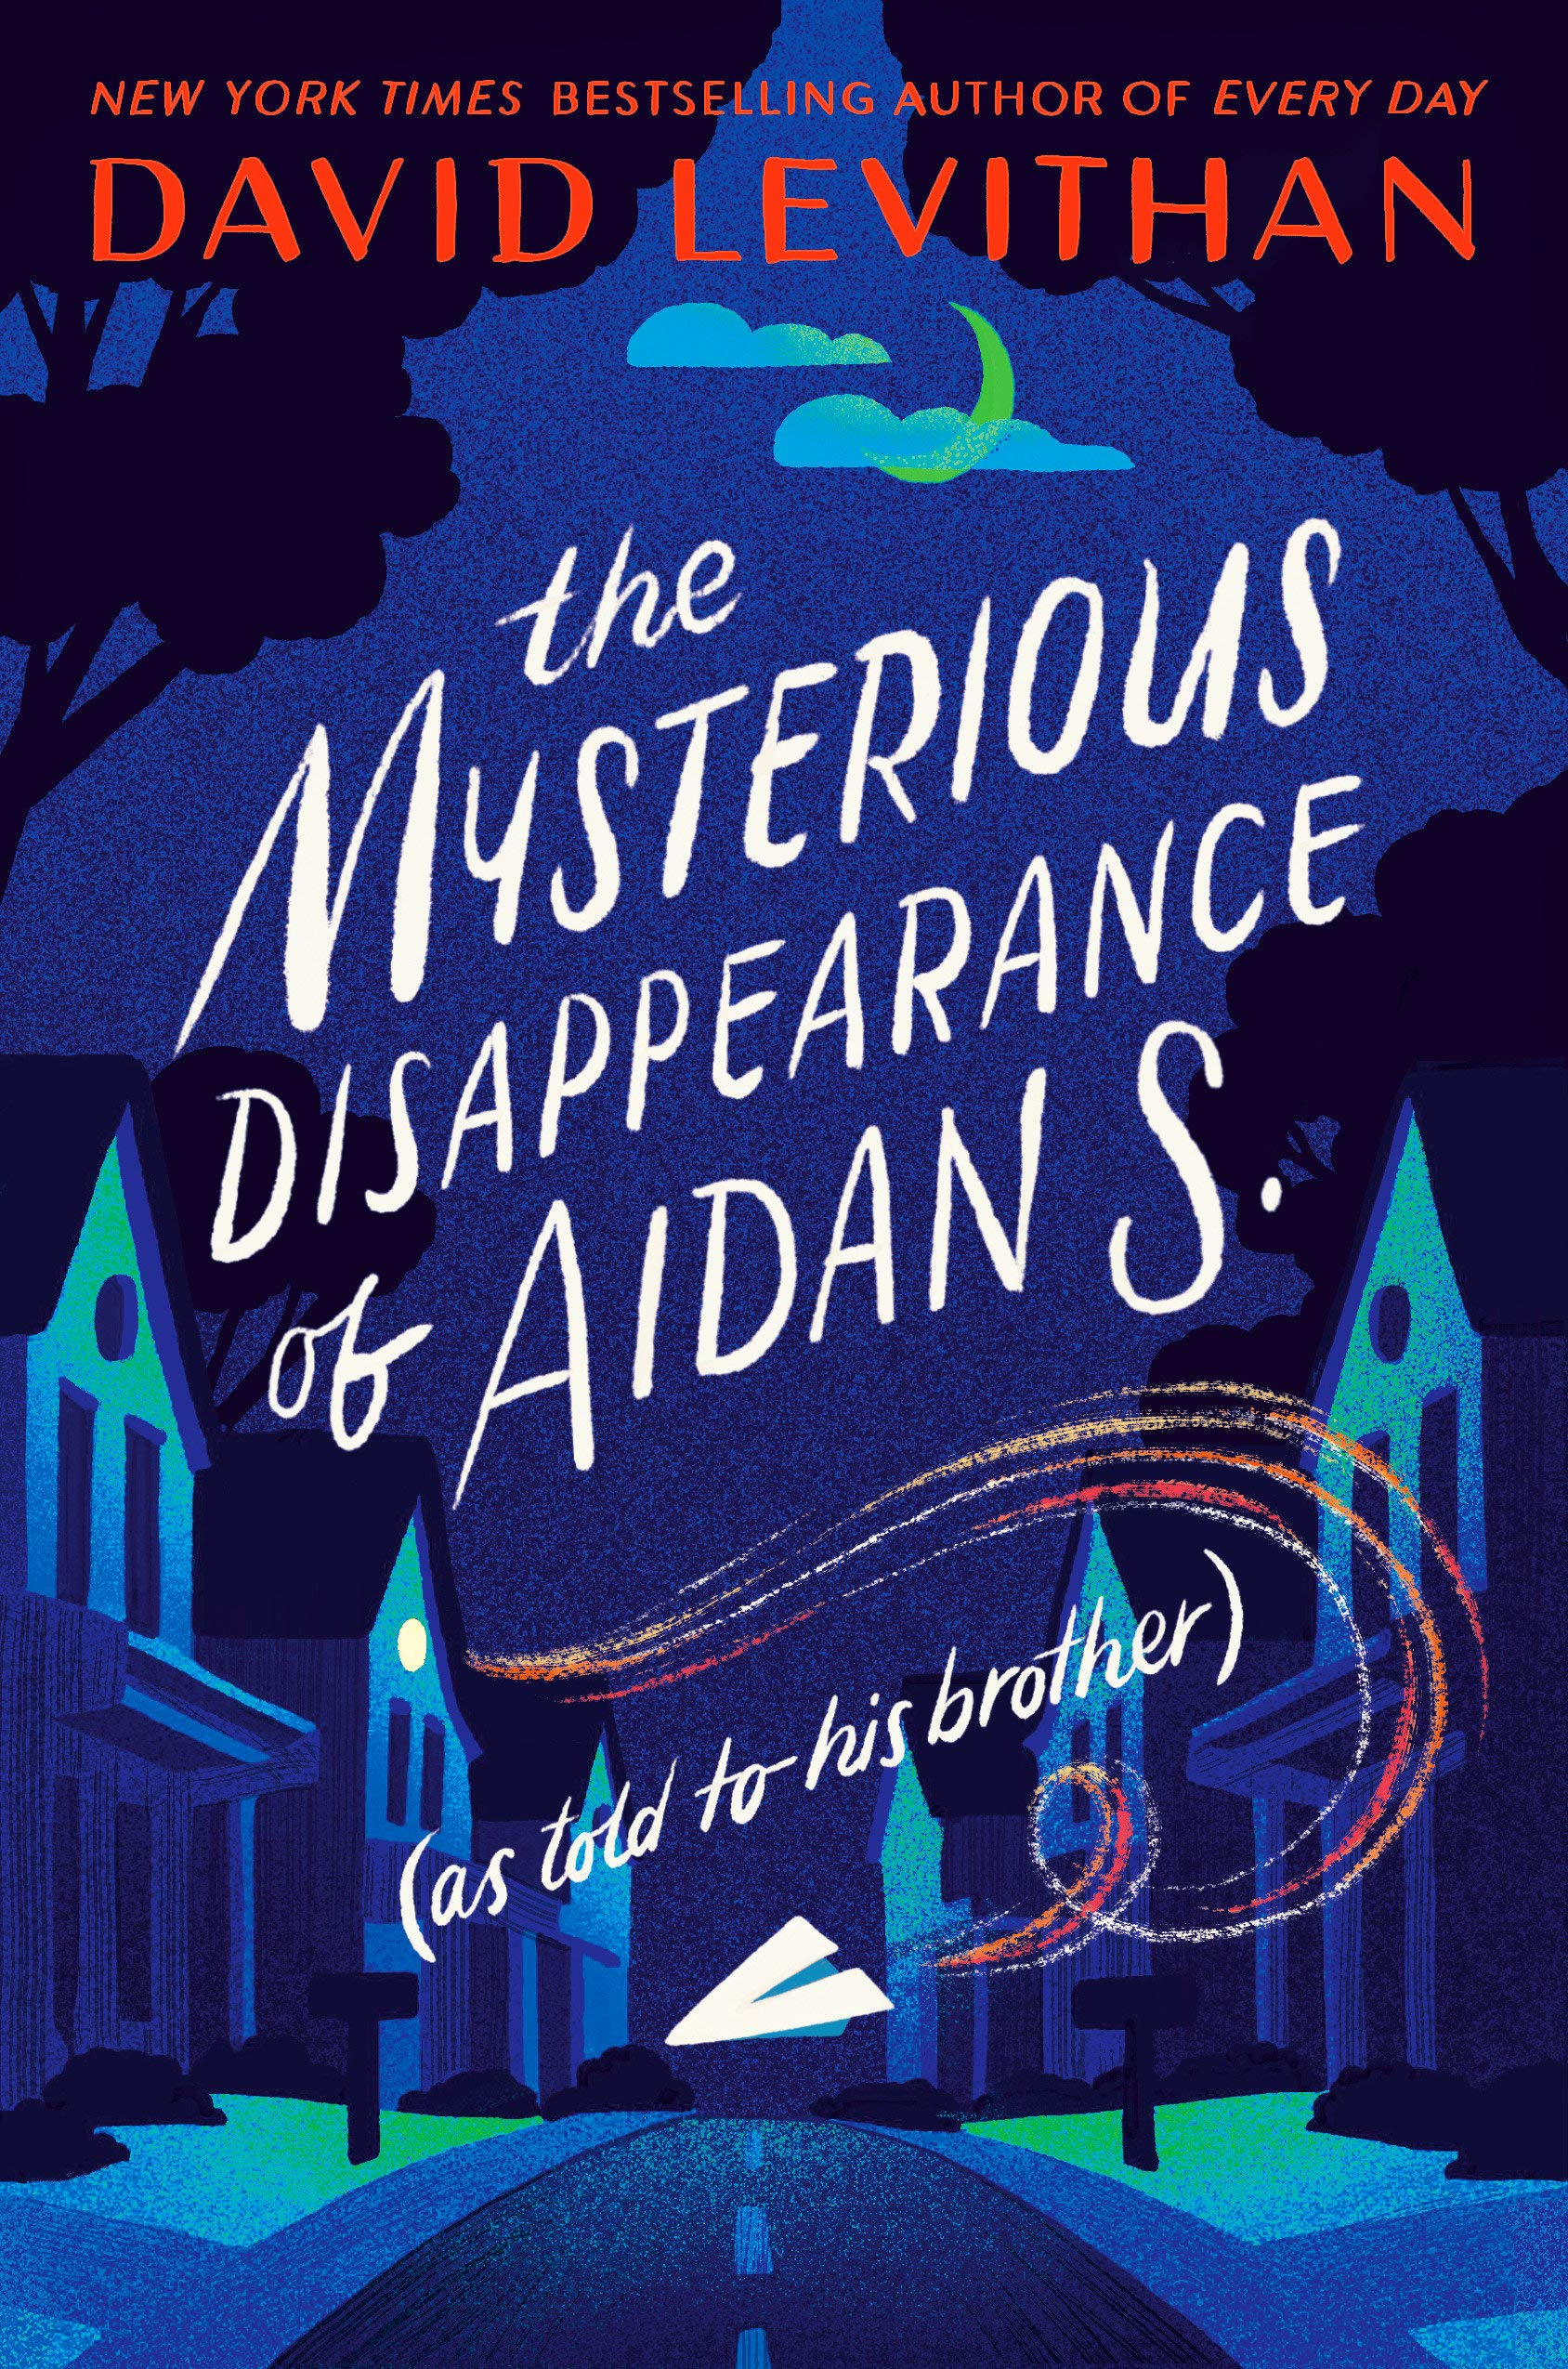 Top 2021 Releases: The Mysterious Disappearance of Aidan S. (as told to his brother):  Levithan, David